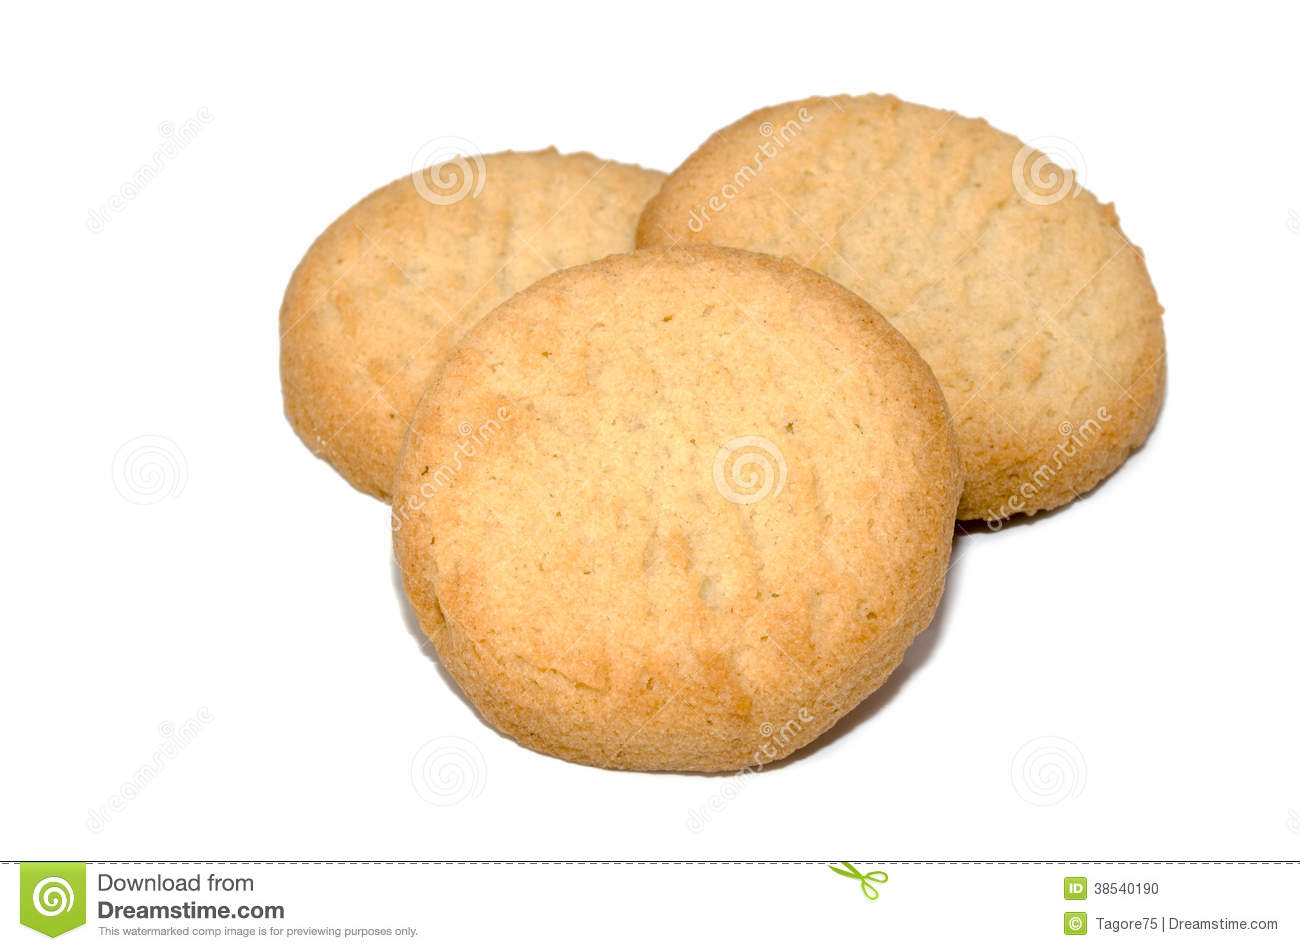 Trois biscuits